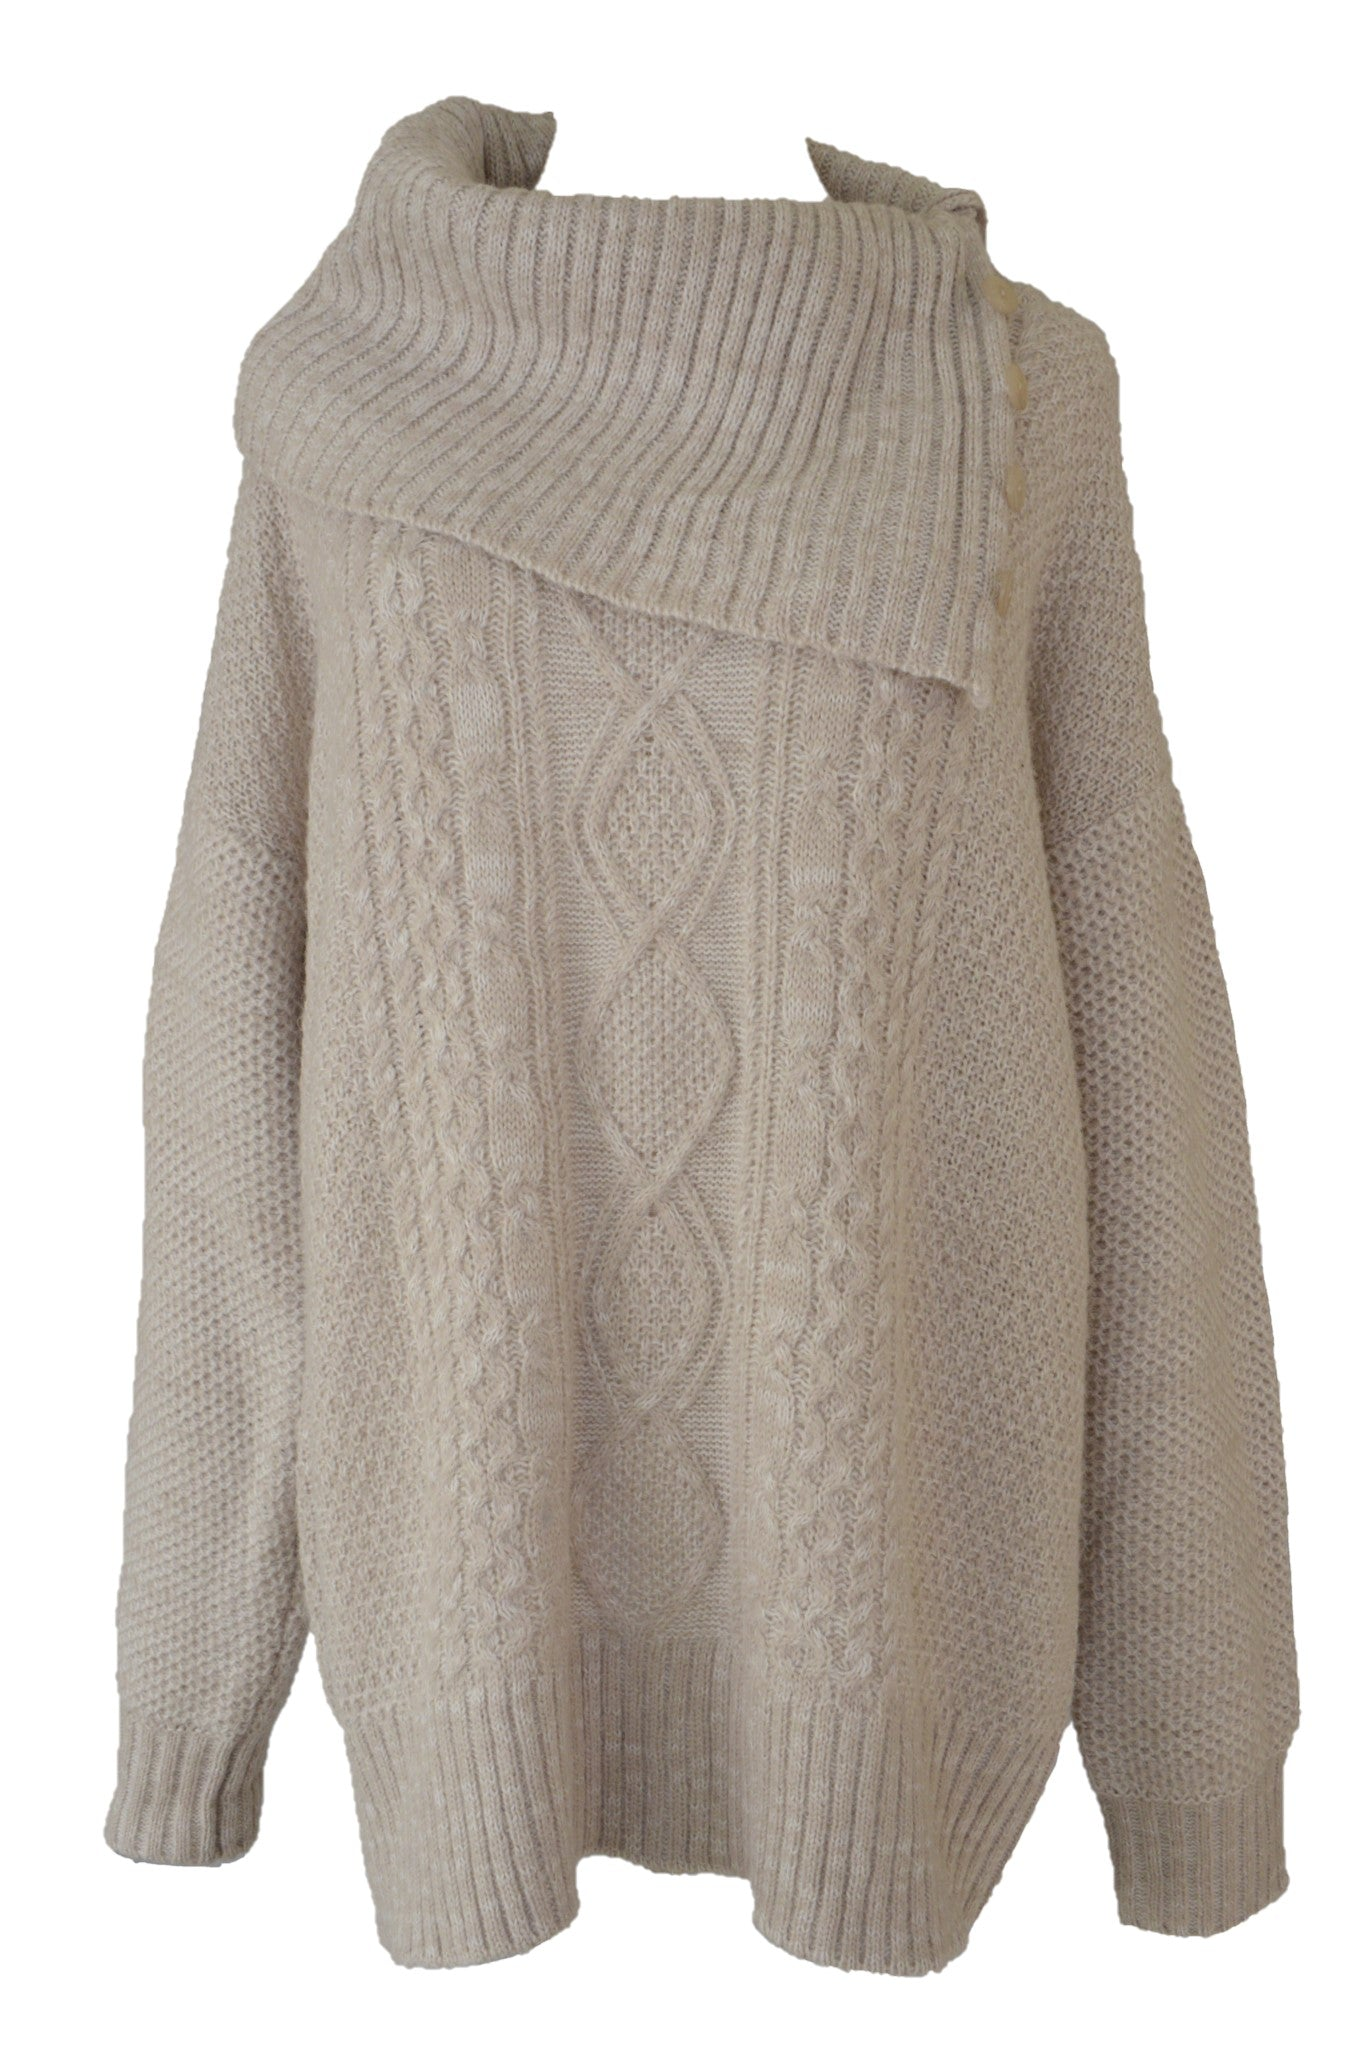 Jendi beige cowl neck knit jumper